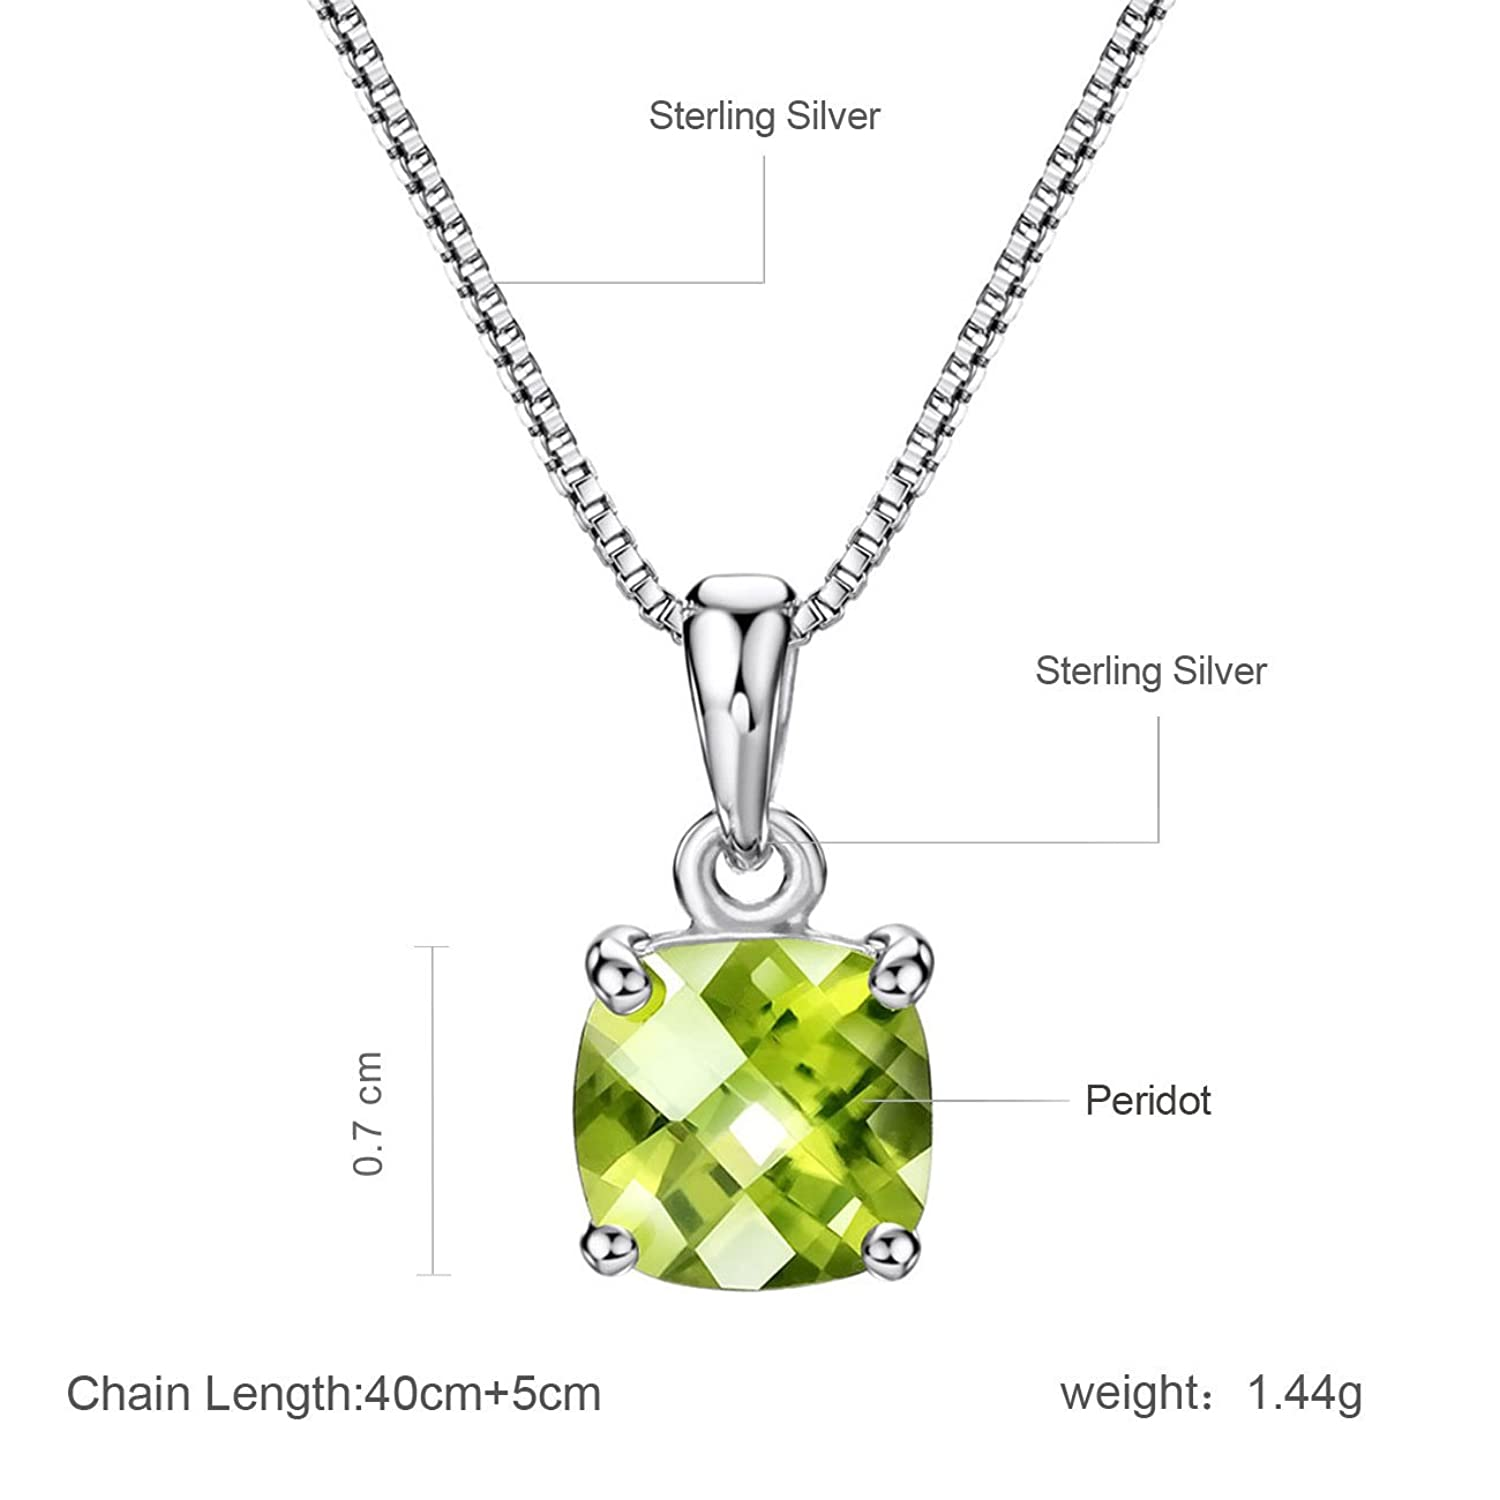 for sign day august christmas mom need nano with cute ideas silver s jewelry leo imprint pendant zodiac gifts necklace sterling a creative gift valentine present birthstone products get girlfriend best now swarovski